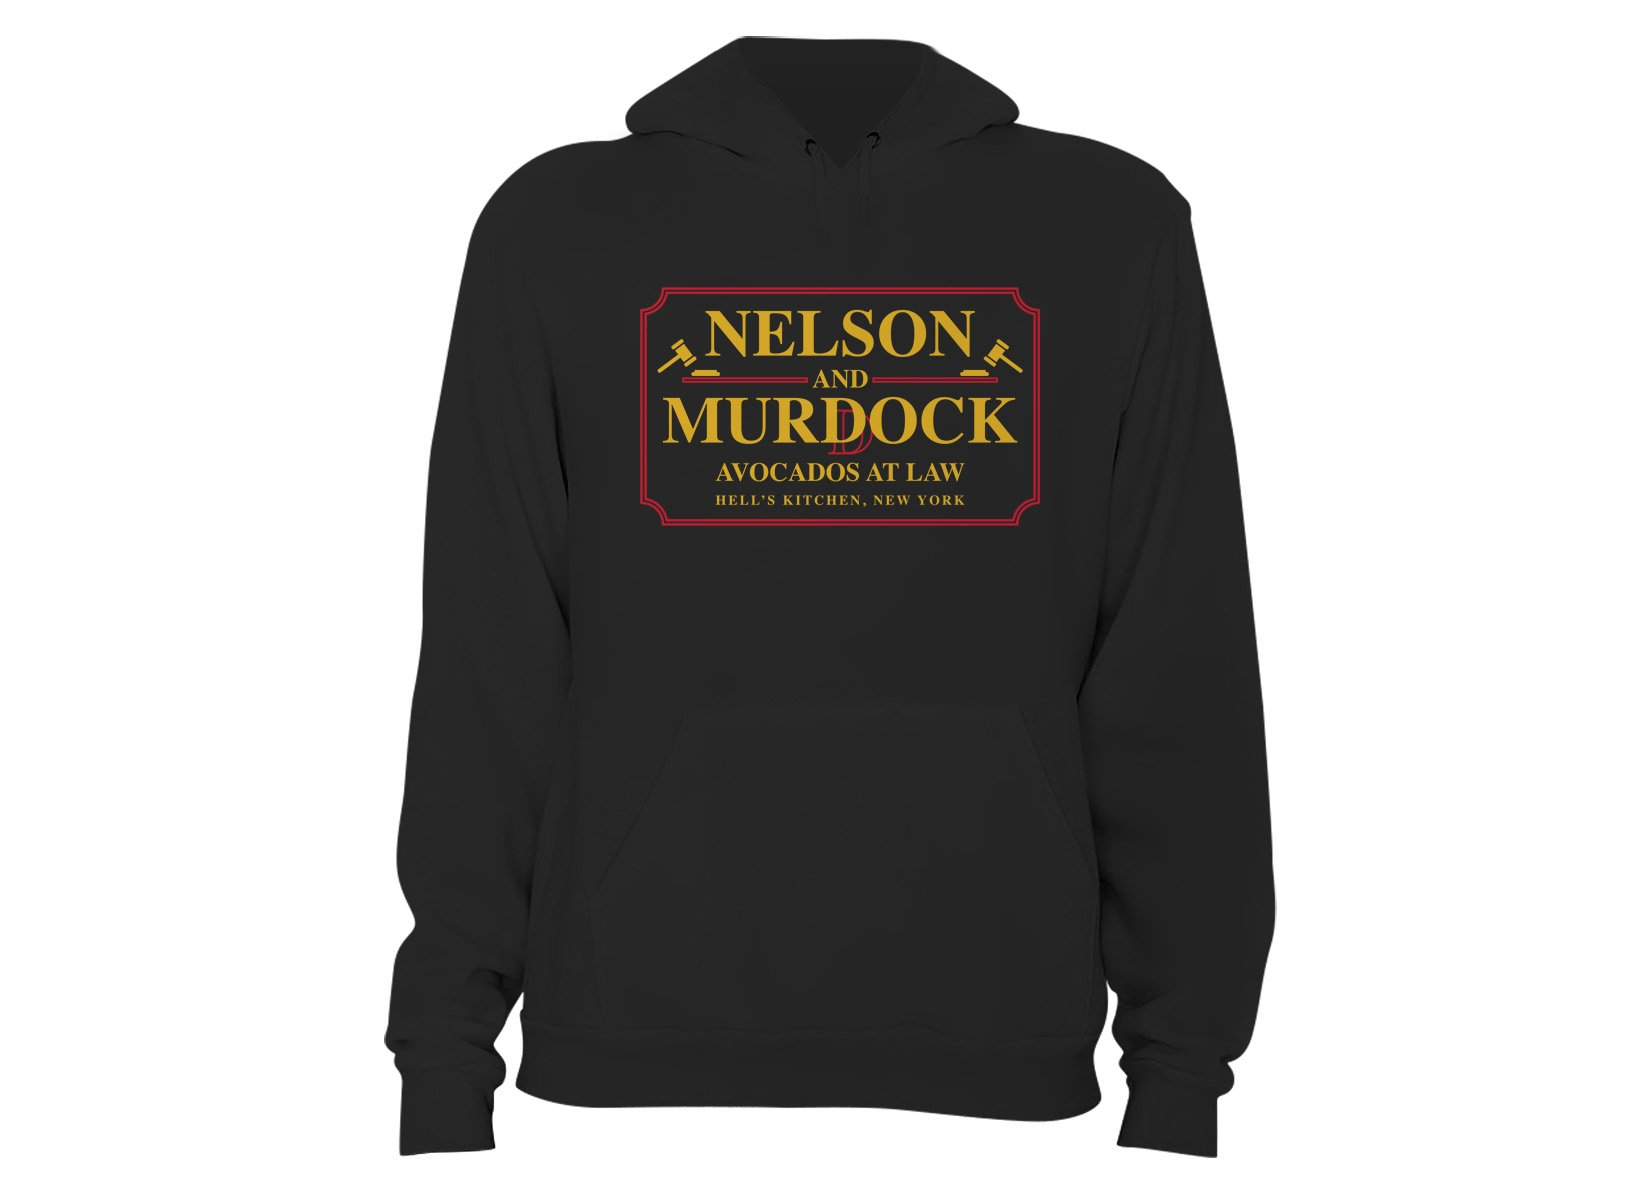 Nelson And Murdock on Hoodie